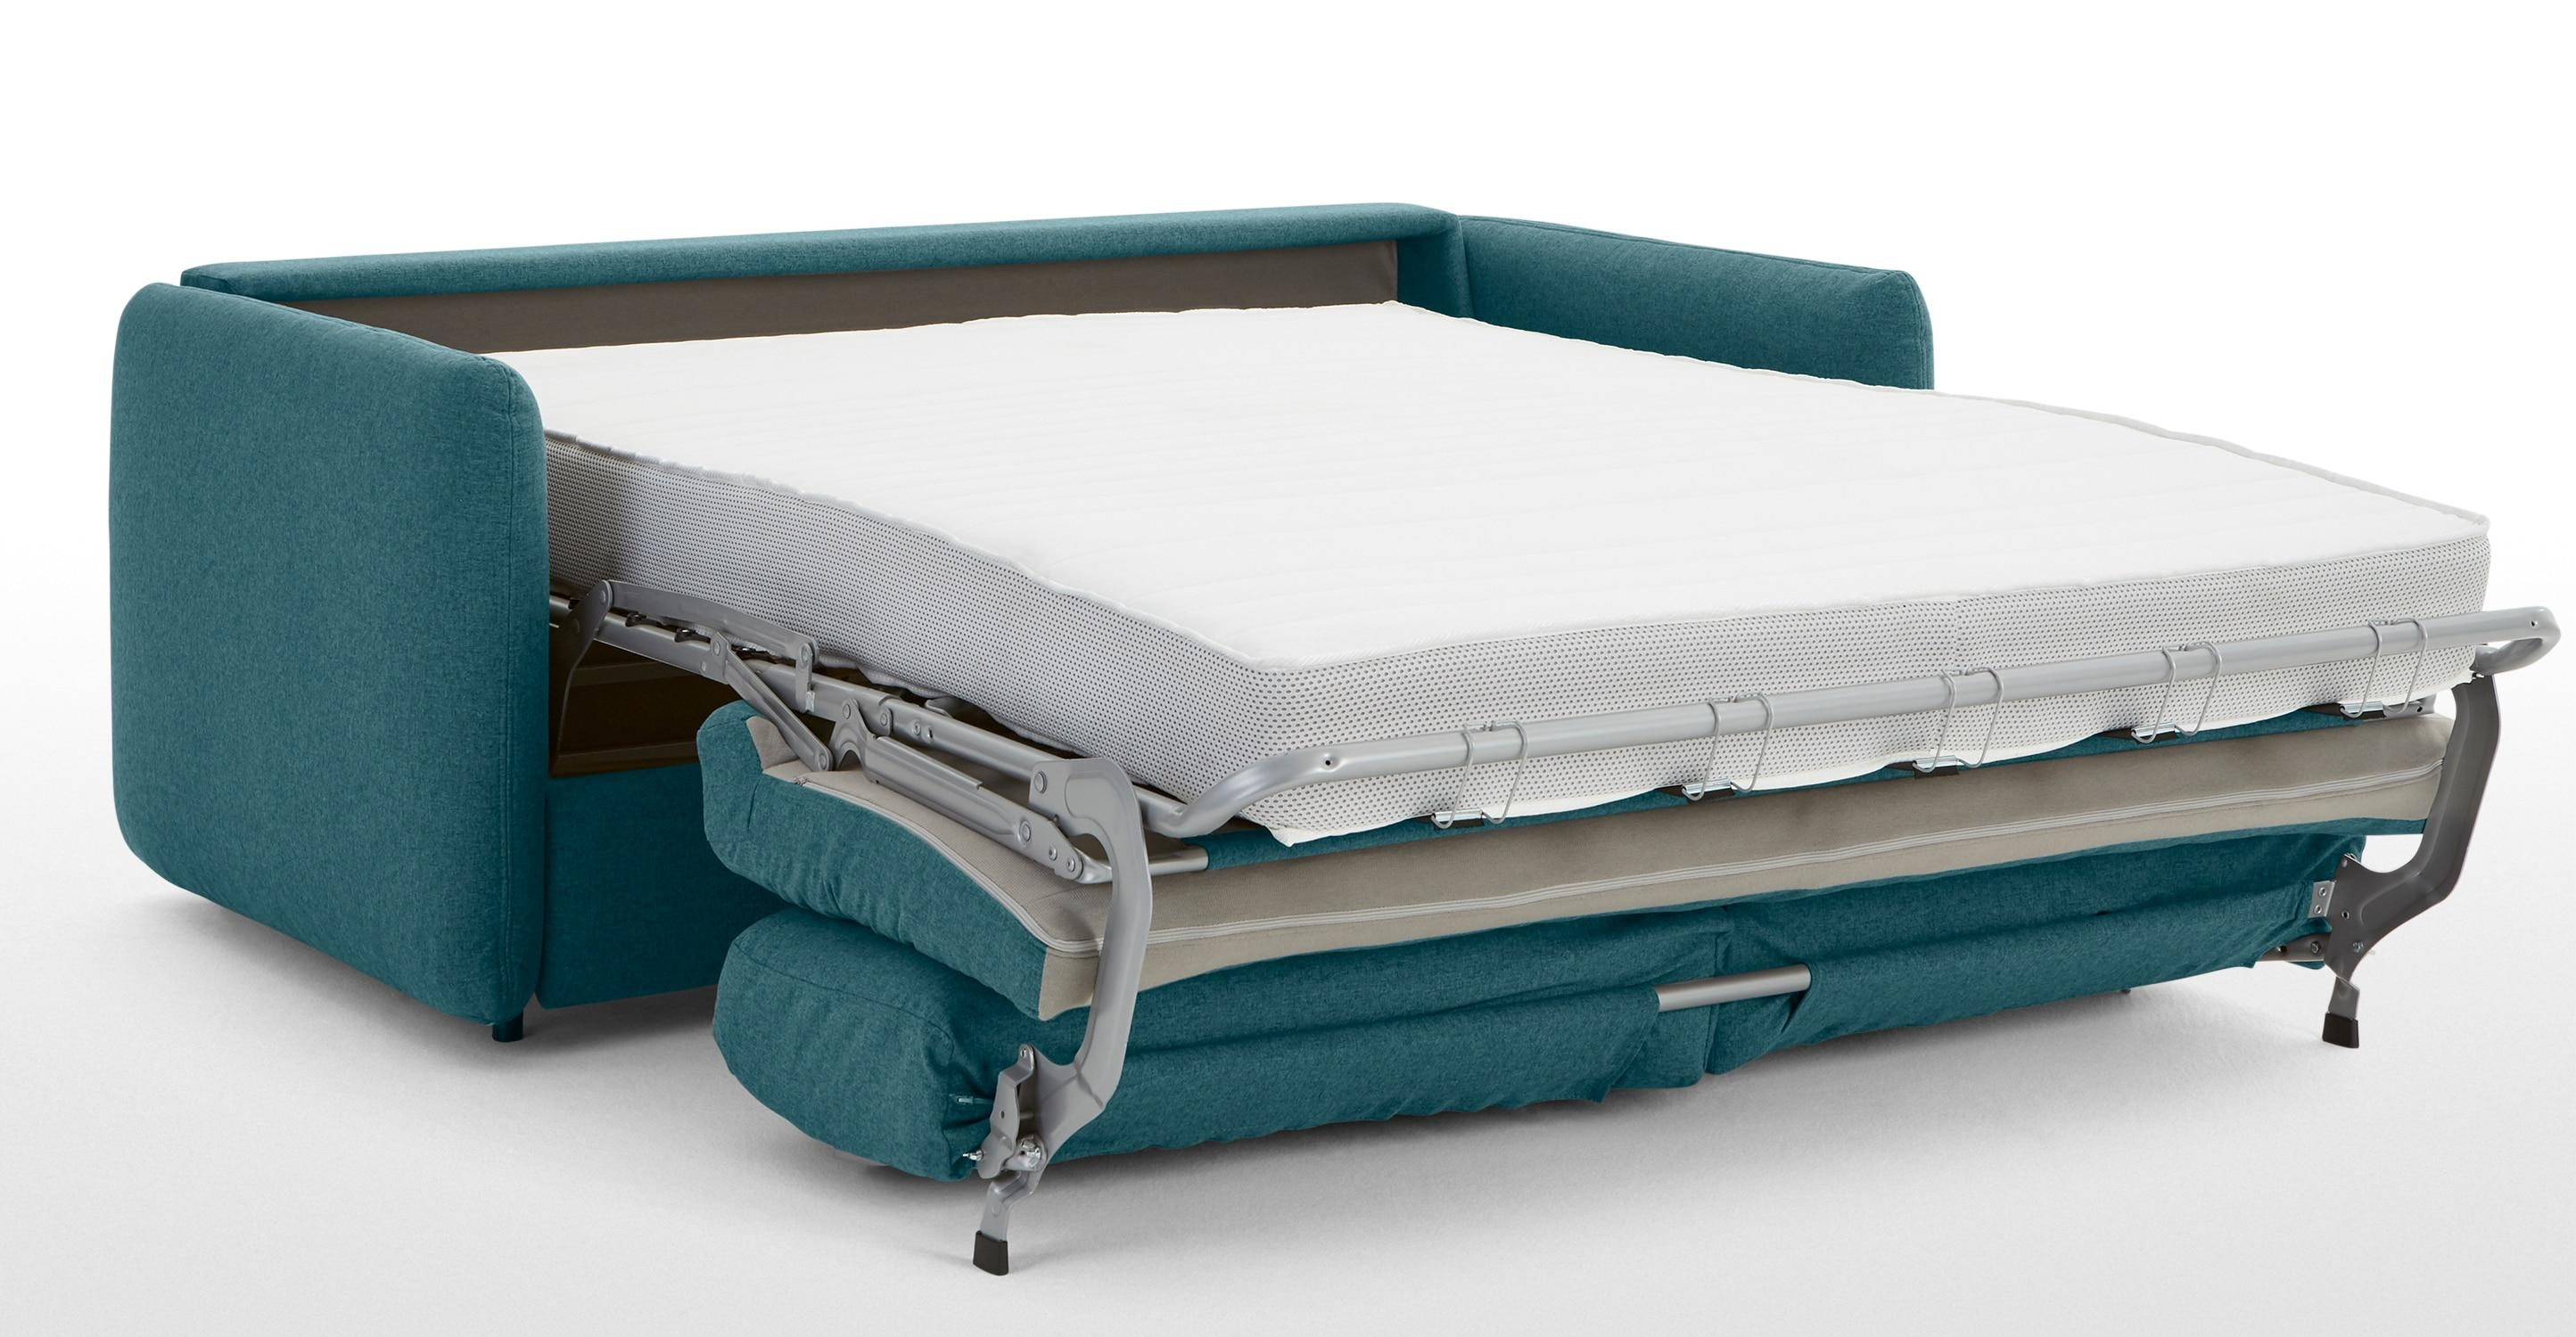 Fletcher 3 Seater Sofa Bed With Pocket Sprung Mattress, Mineral Throughout Aqua Sofa Beds (Image 9 of 20)